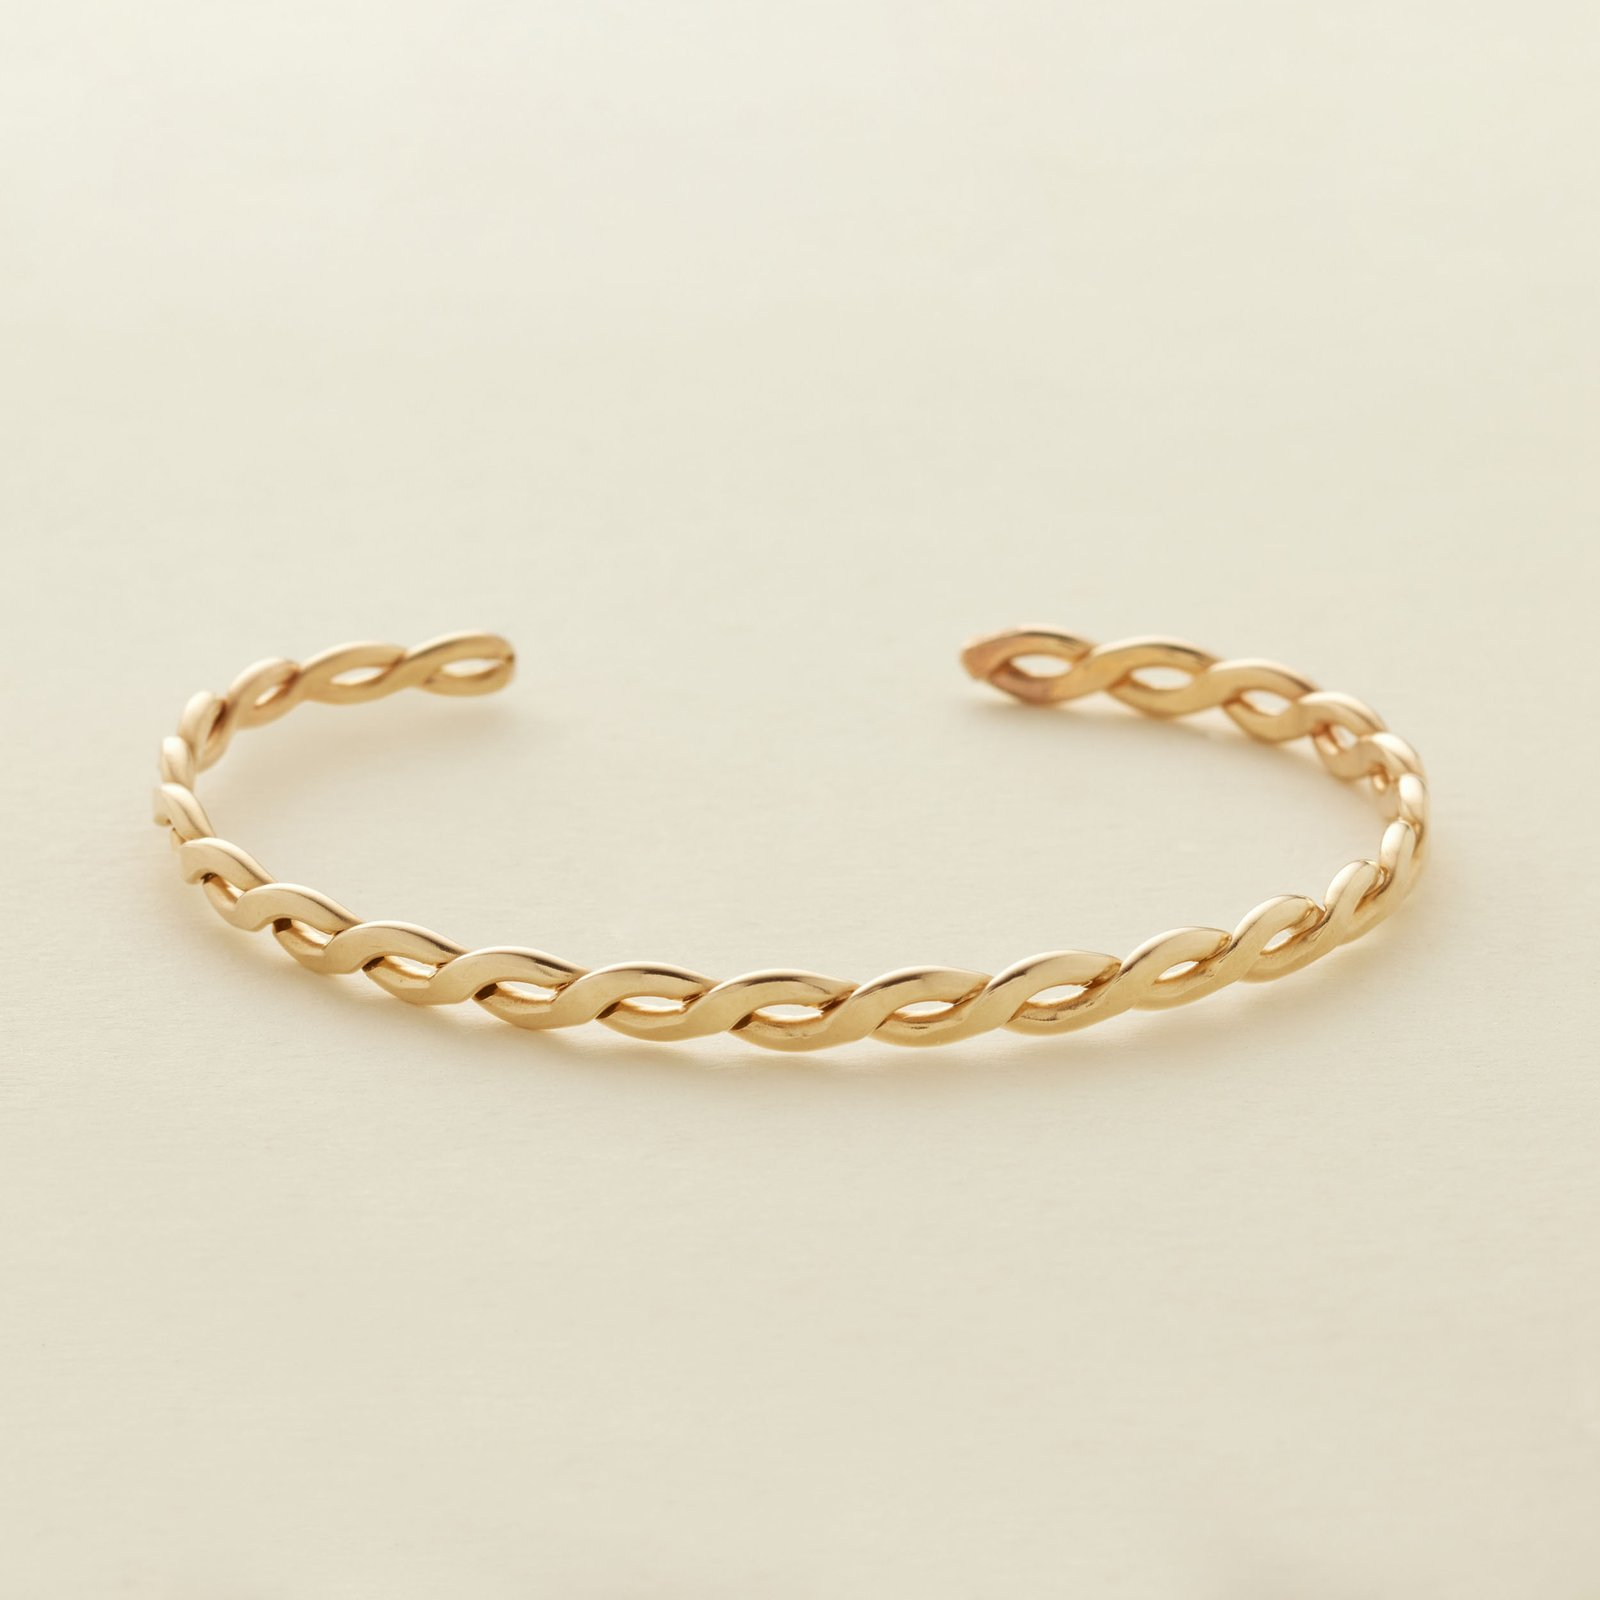 a gold braided bracelet on a cream background